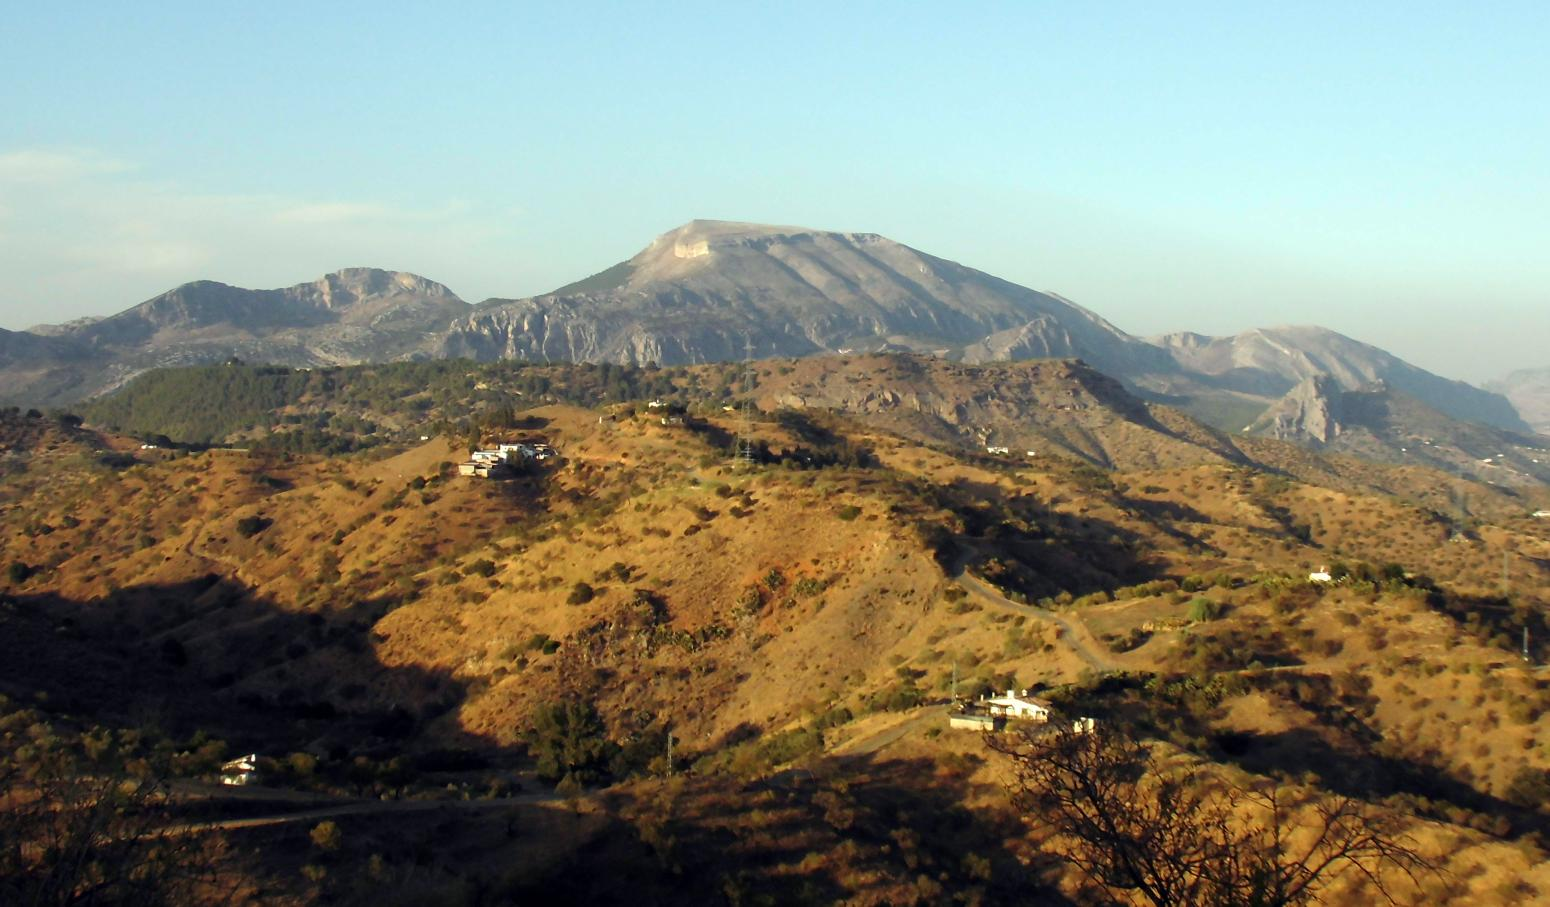 Imagen de GR 249. Stage 21. Estación de El Chorro (Álora) - Carratraca - Ardales. The slopes of Las Viñas which you have already travelled along, and the ridge of the Huma mountains in the background